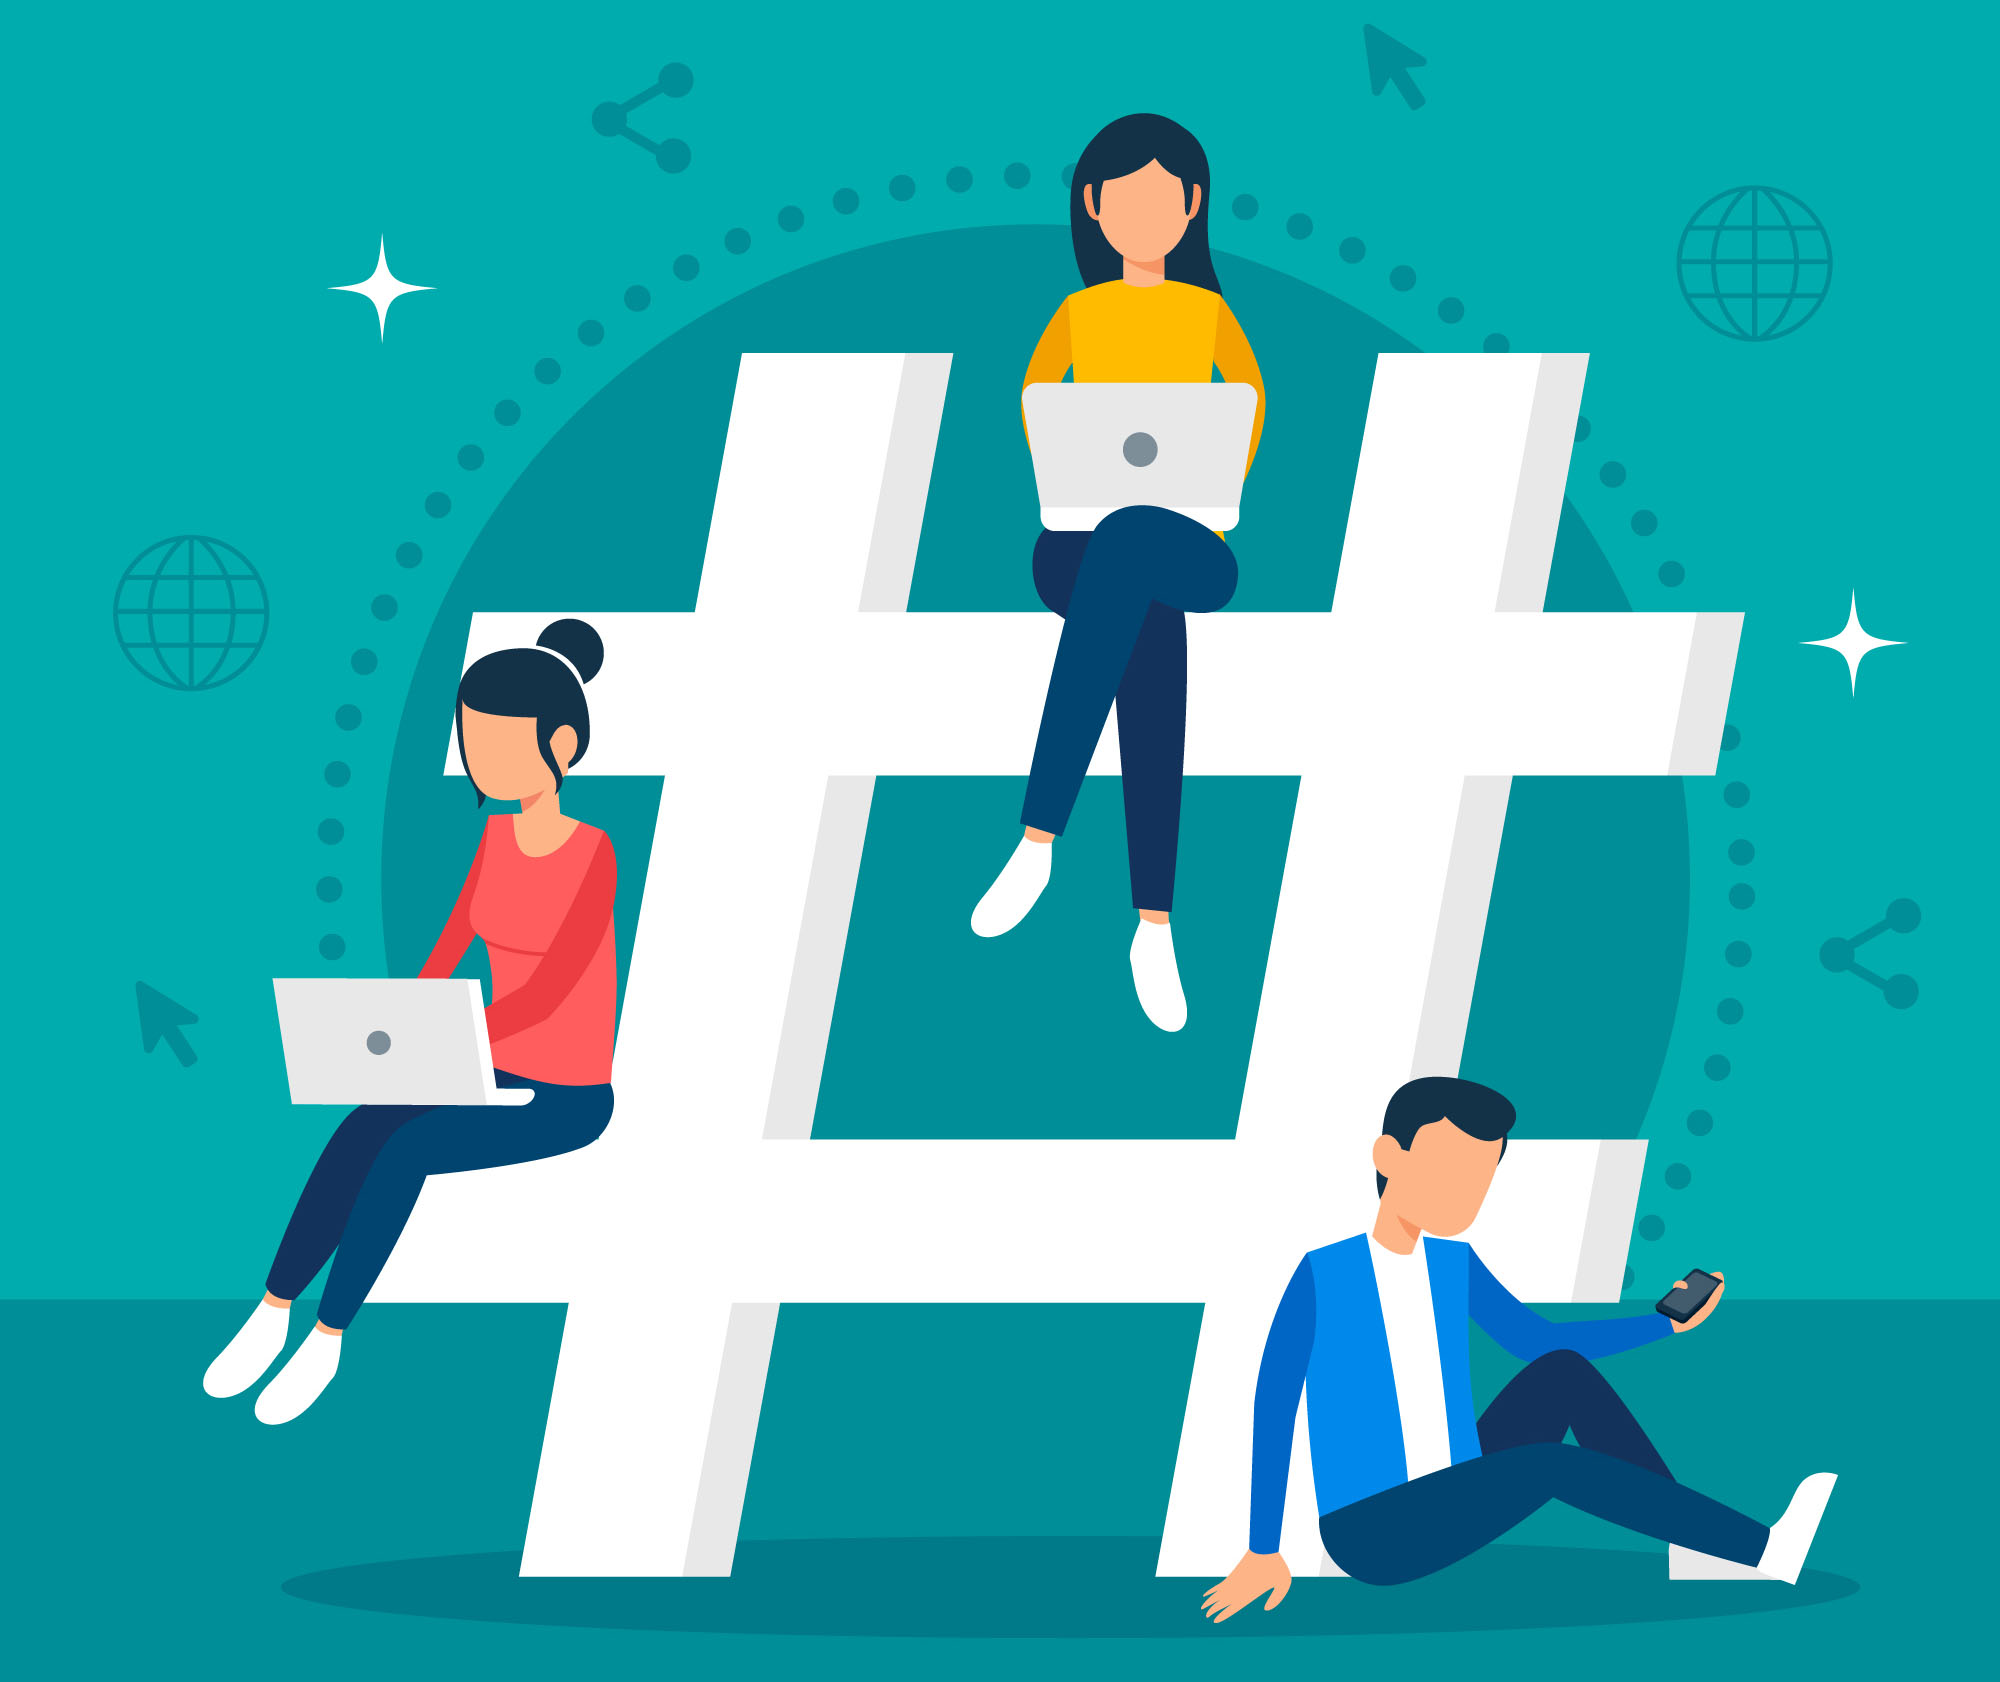 Graphic of people working atop a giant hashtag